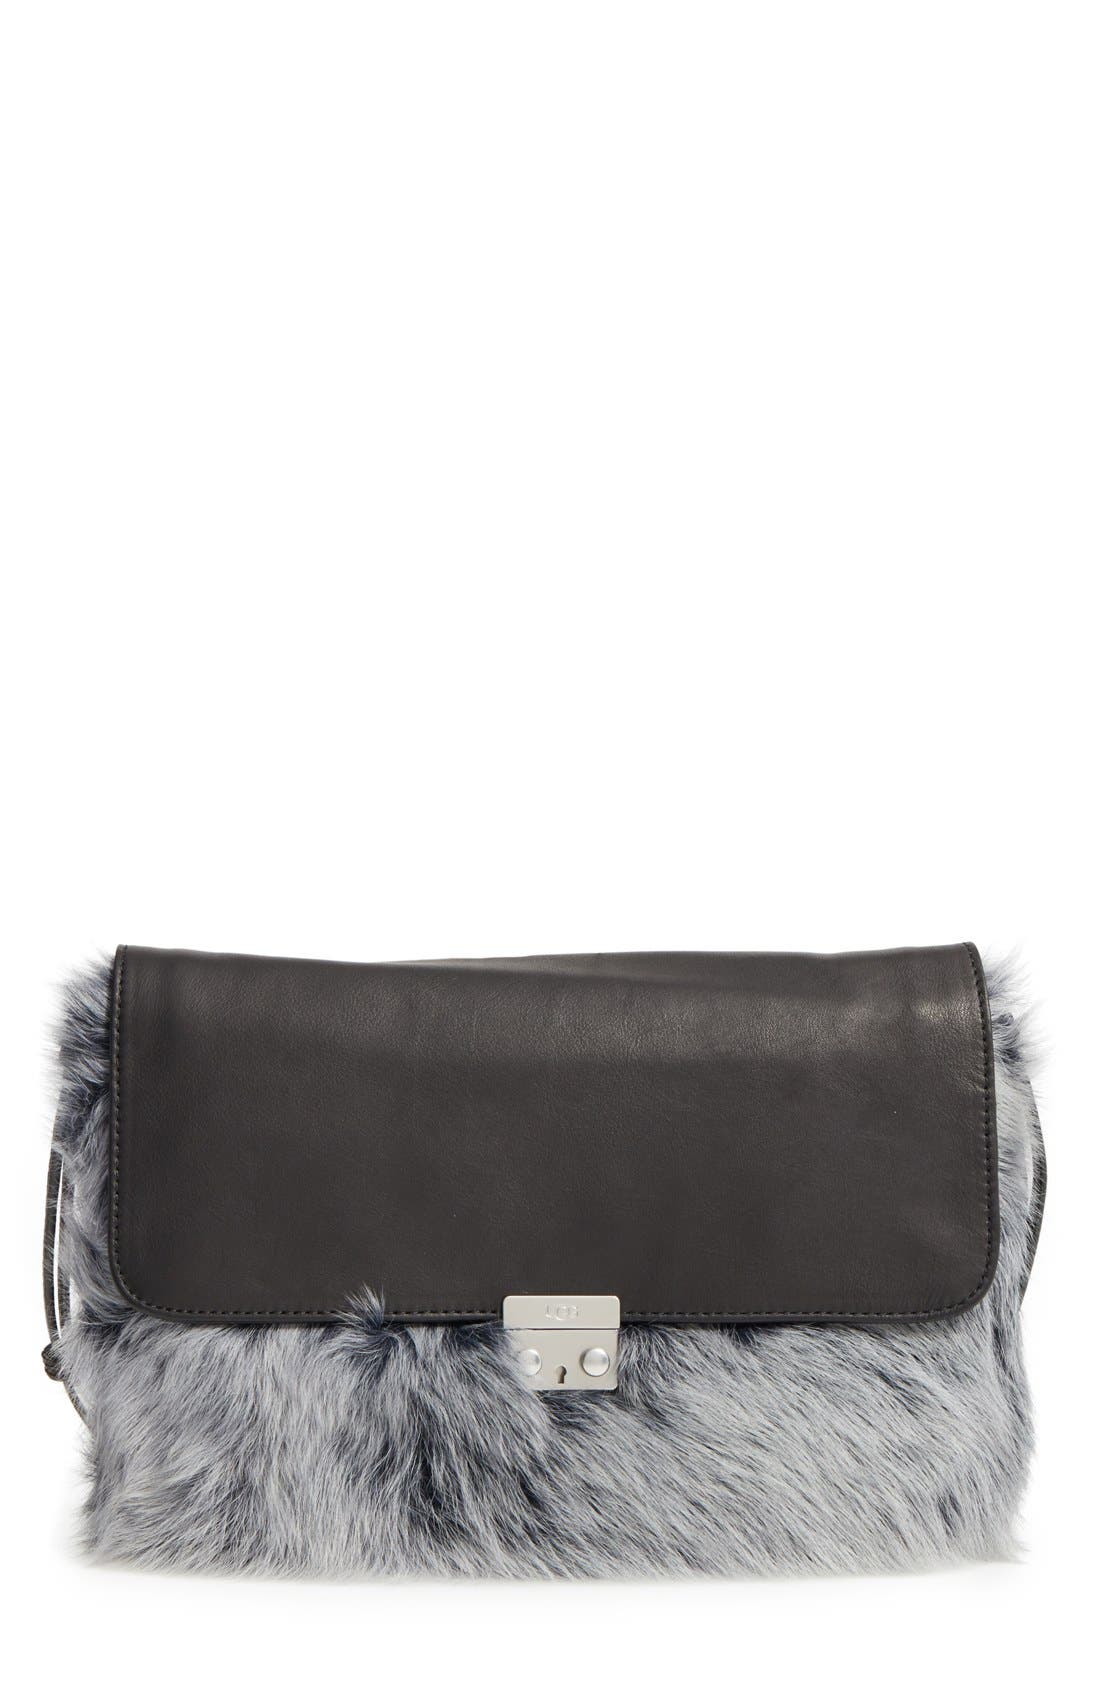 Alternate Image 1 Selected - UGG® Vivienne Genuine Shearling Convertible Clutch